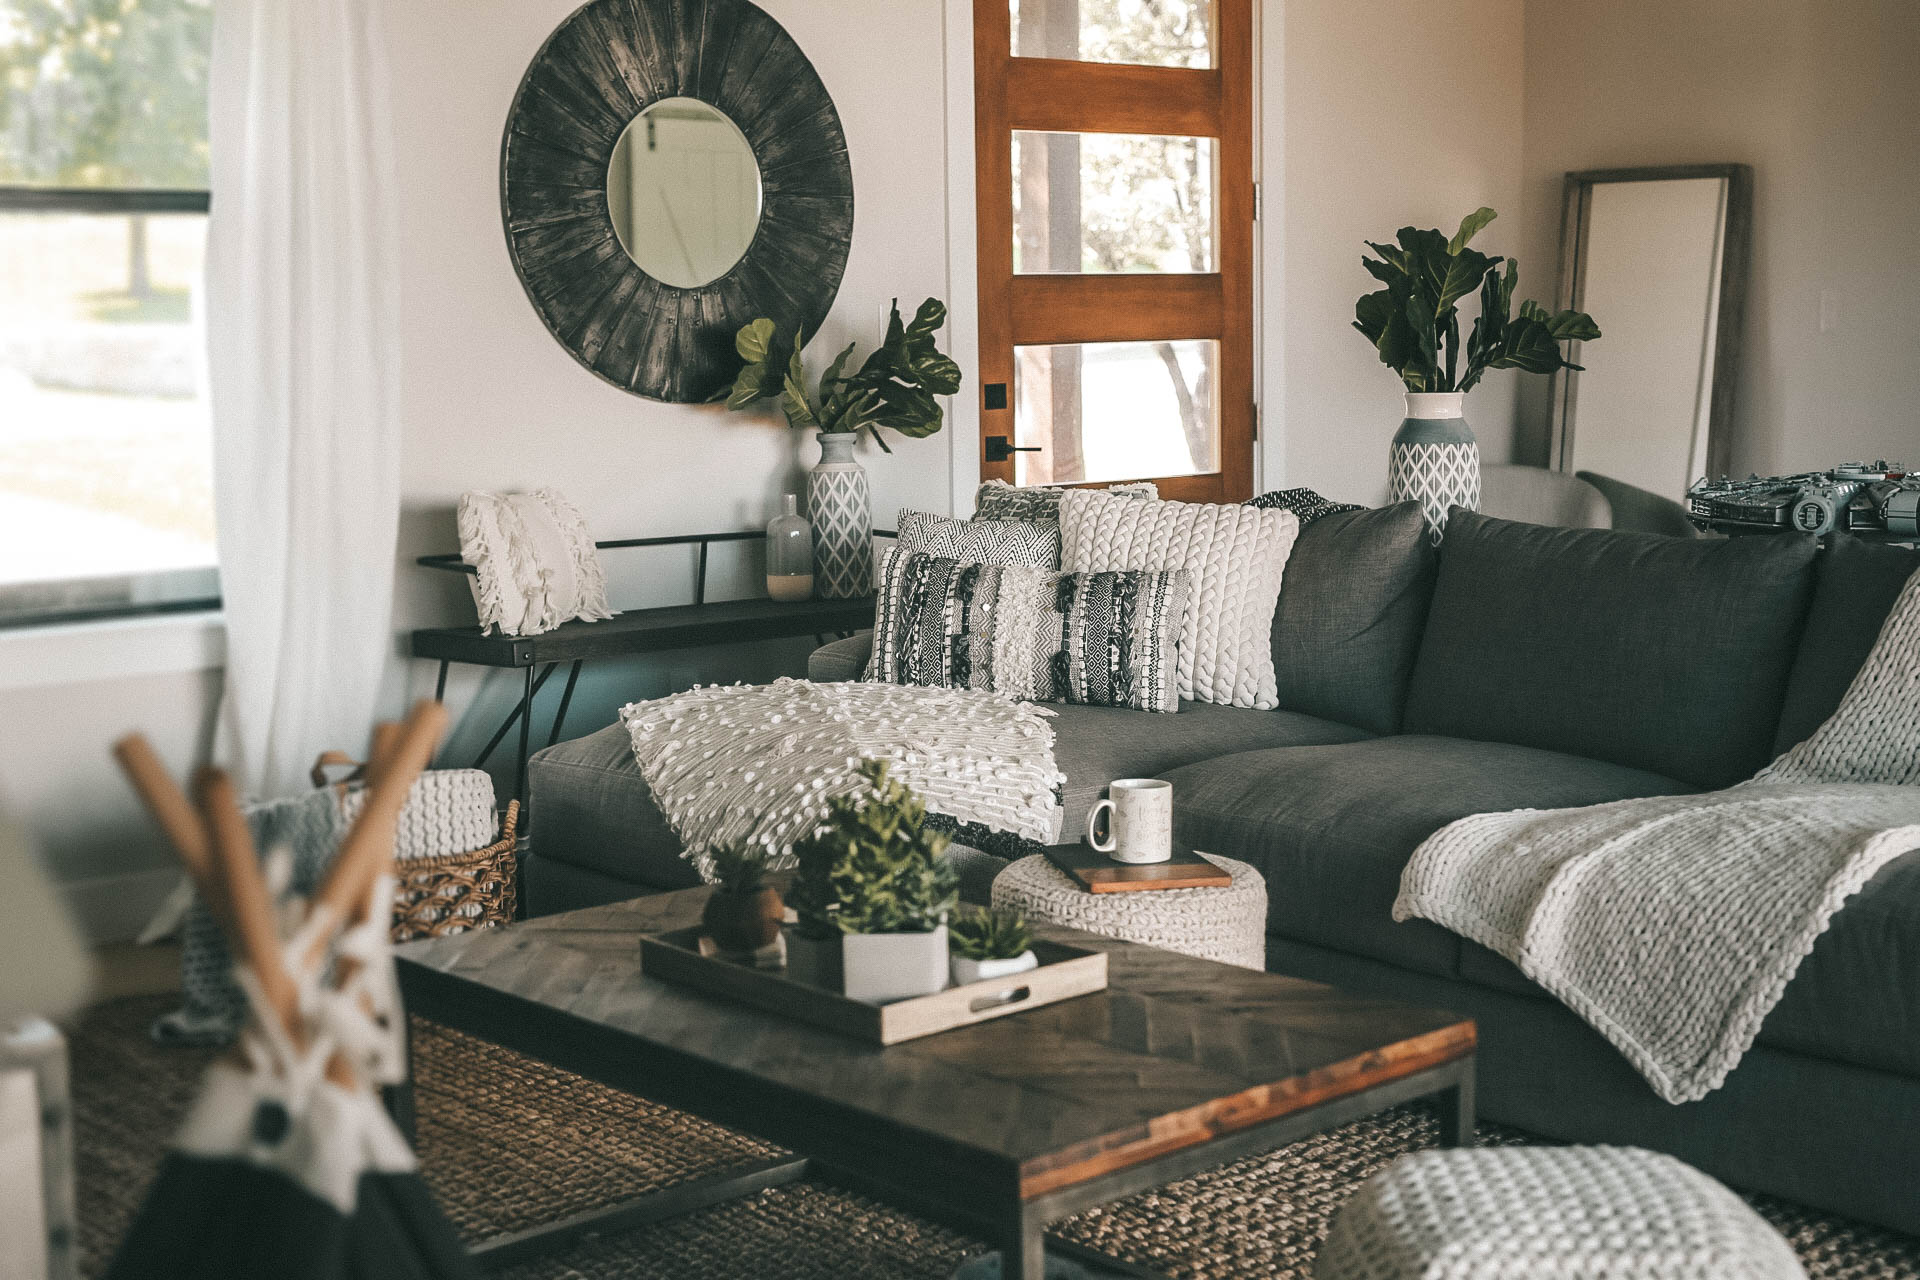 DTKAustin shares a sneak peek into her newly built home. She styled the modern farmhouse with Nordstrom Home Decor on a budget - Fall Home Decor for a Cozier Home with Nordstrom Decor featured by popular Austin life and style blogger, Dressed to Kill